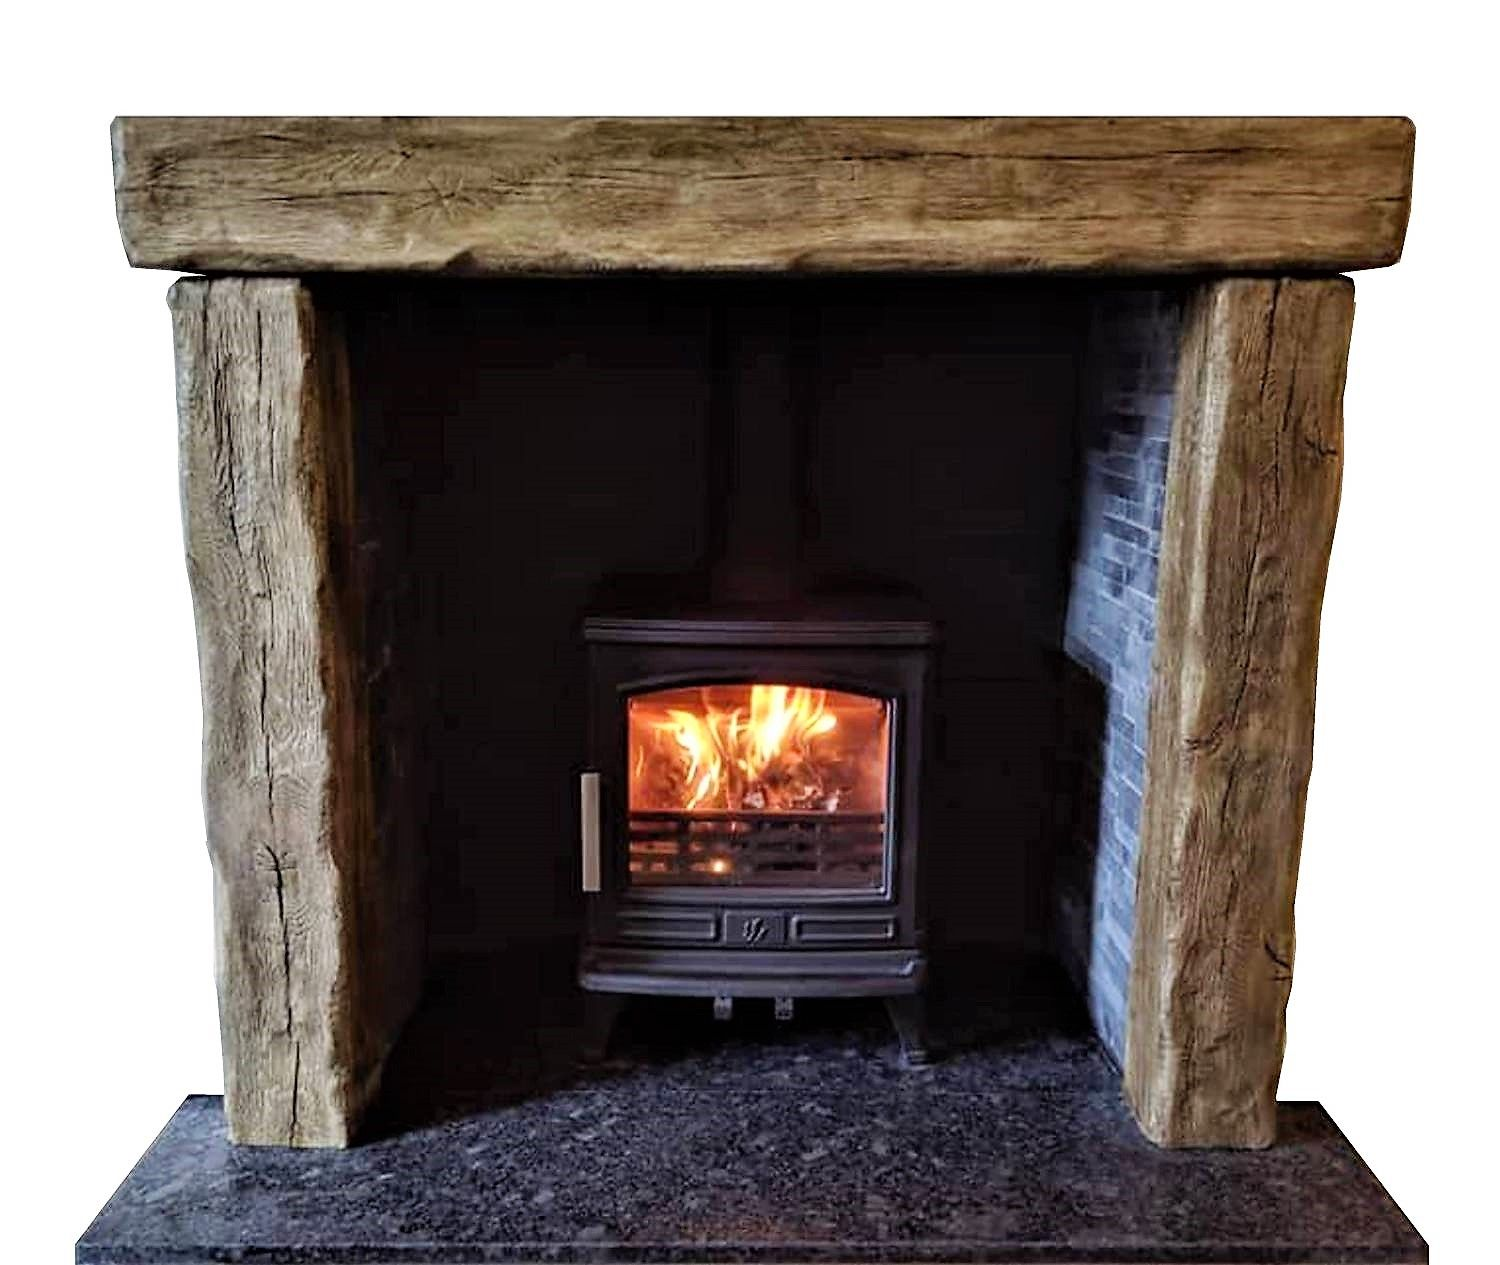 Stove Fireplace With Ceramic Painted Oak Effect Beams To Meet Distances To Combustible Material Regulations Ceram With Images Oak Beam Fireplace Stove